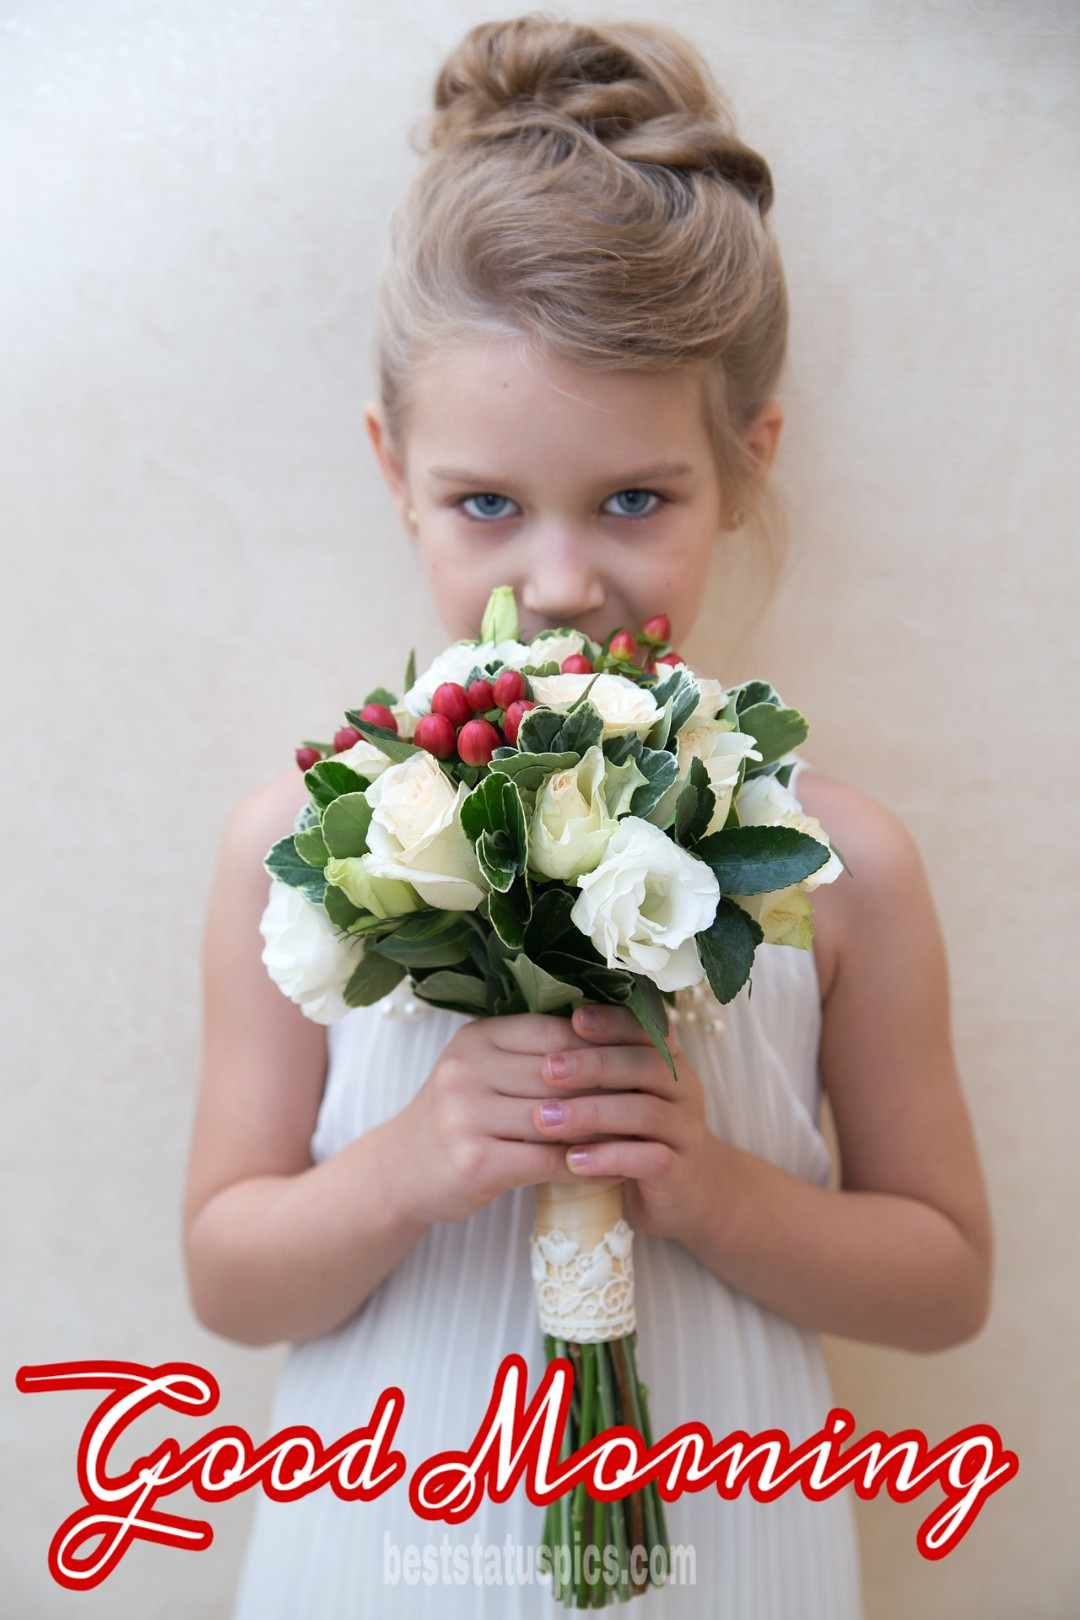 Cute Little girl good morning picture with flowers